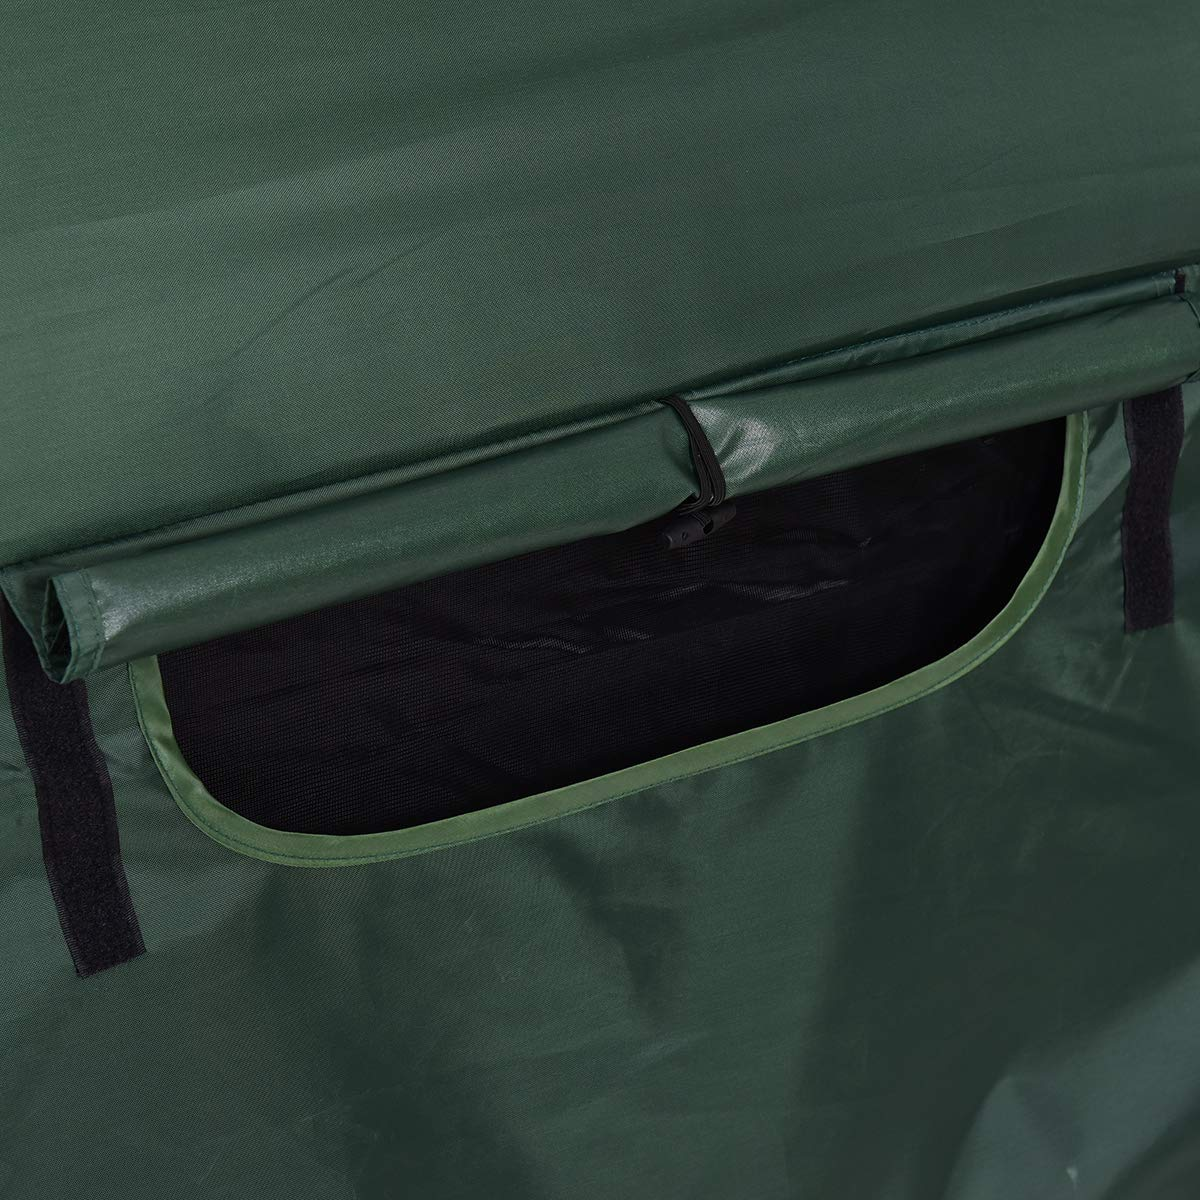 GYMAX Tent Cot, 1 Person Foldable Camping Waterproof Shelter with Window Carry Bag by GYMAX (Image #6)